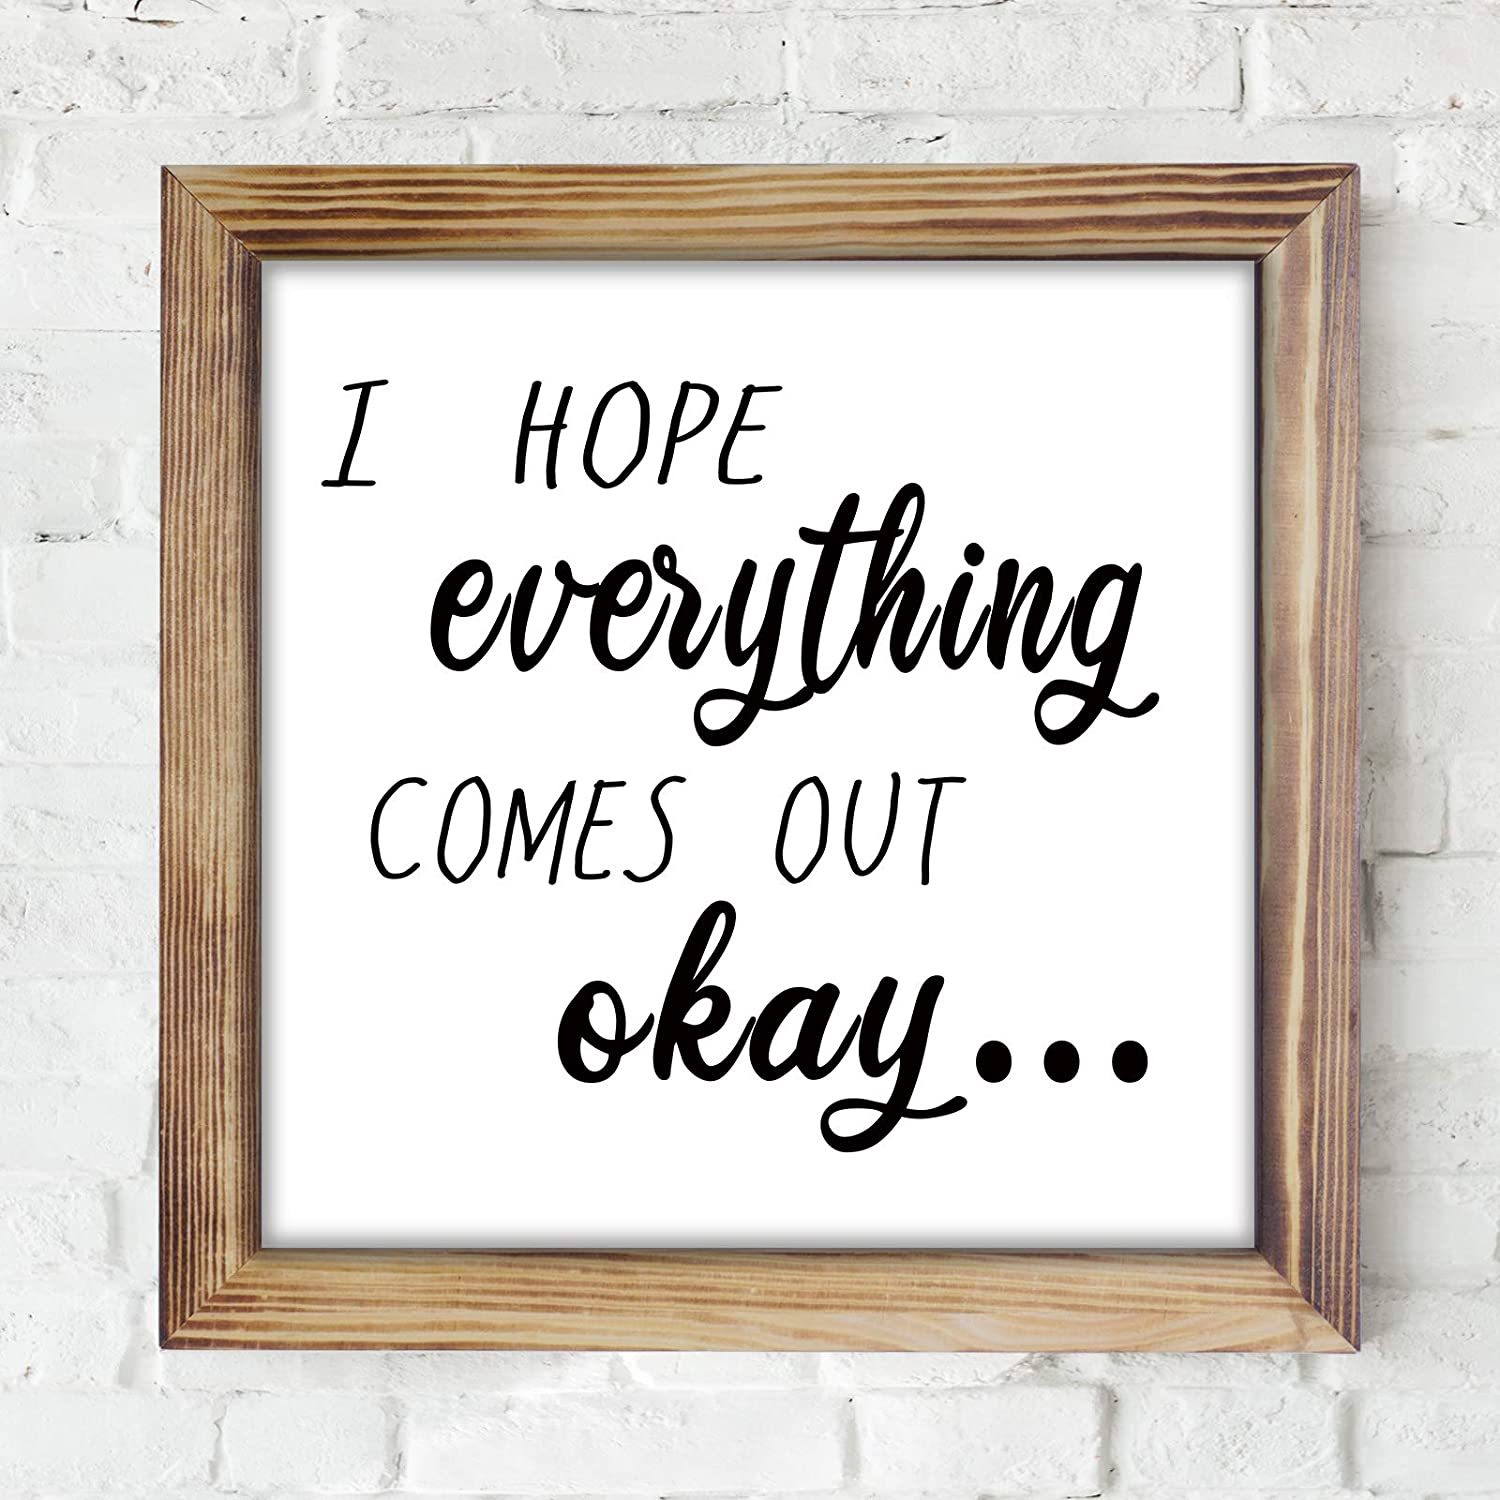 I Hope Everything Comes Out Okay Sign - Funny Rustic Farmhouse Wall Decor Sign, Cute Guest Bathroom Wall Art, Rustic Home Decor, Restroom Sign for Bathroom Wall with Funny Quotes 12x12 Inch